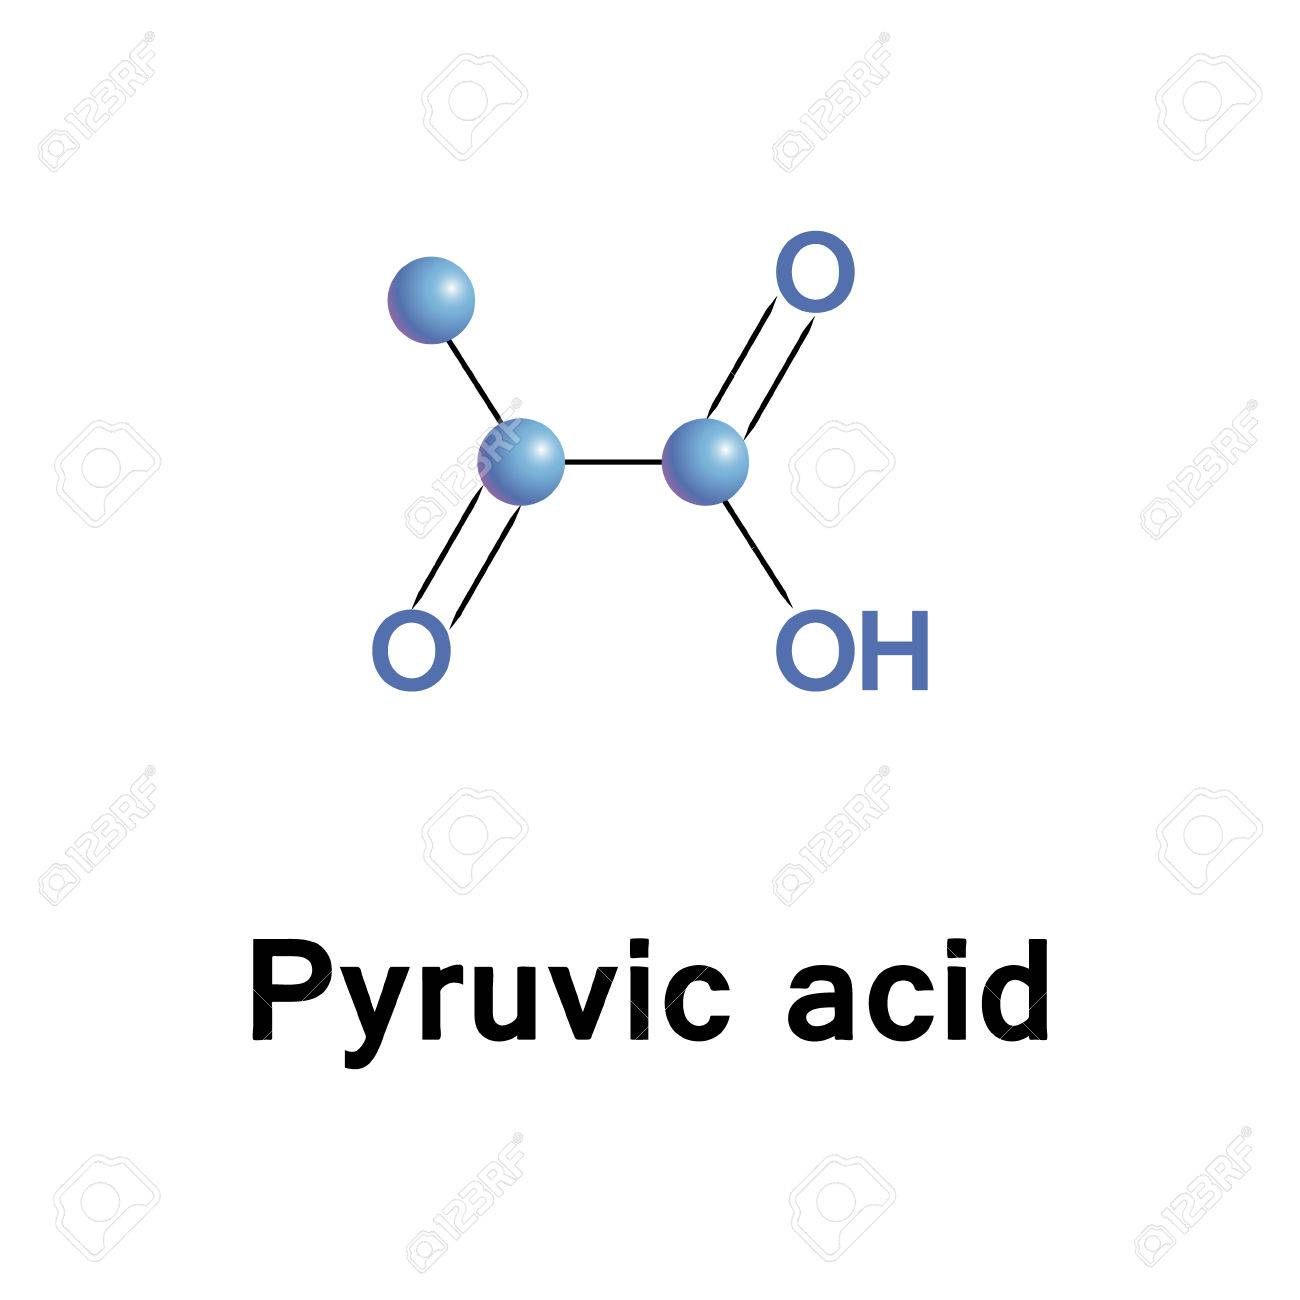 Pyruvic Acid Is The Simplest Of The Alpha Keto Acids With A